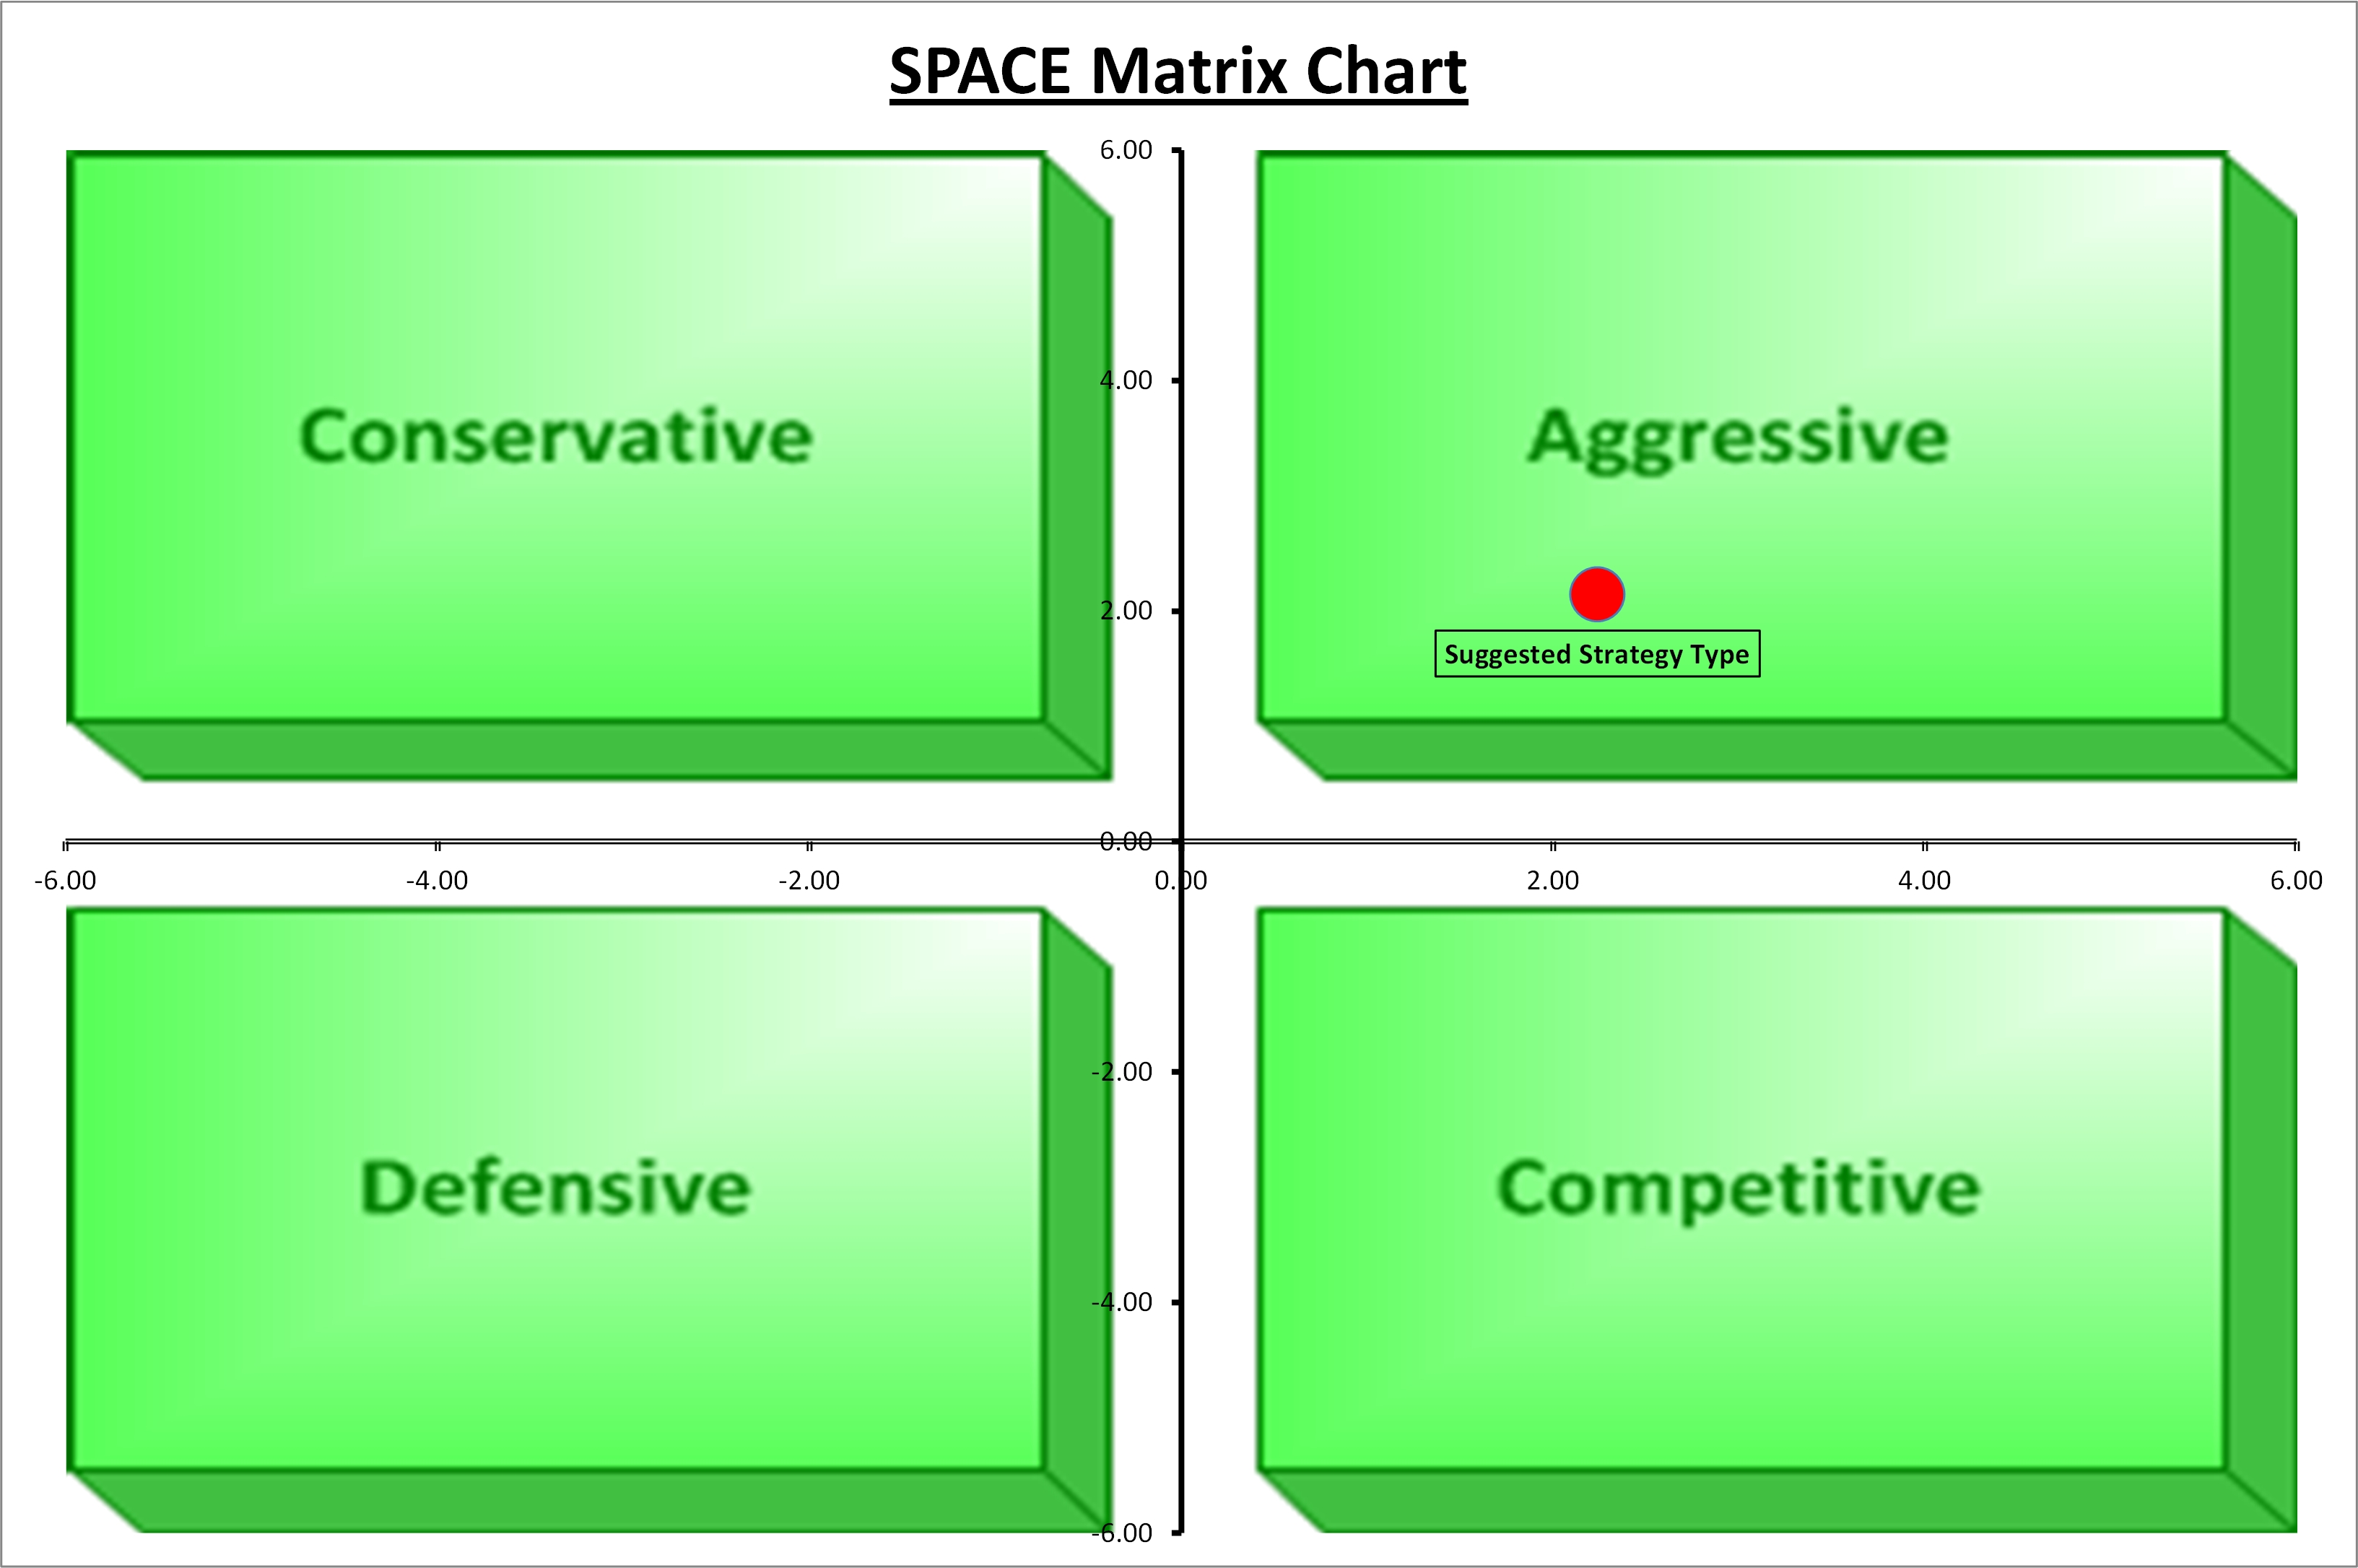 space-matrix-chart-template.jpg